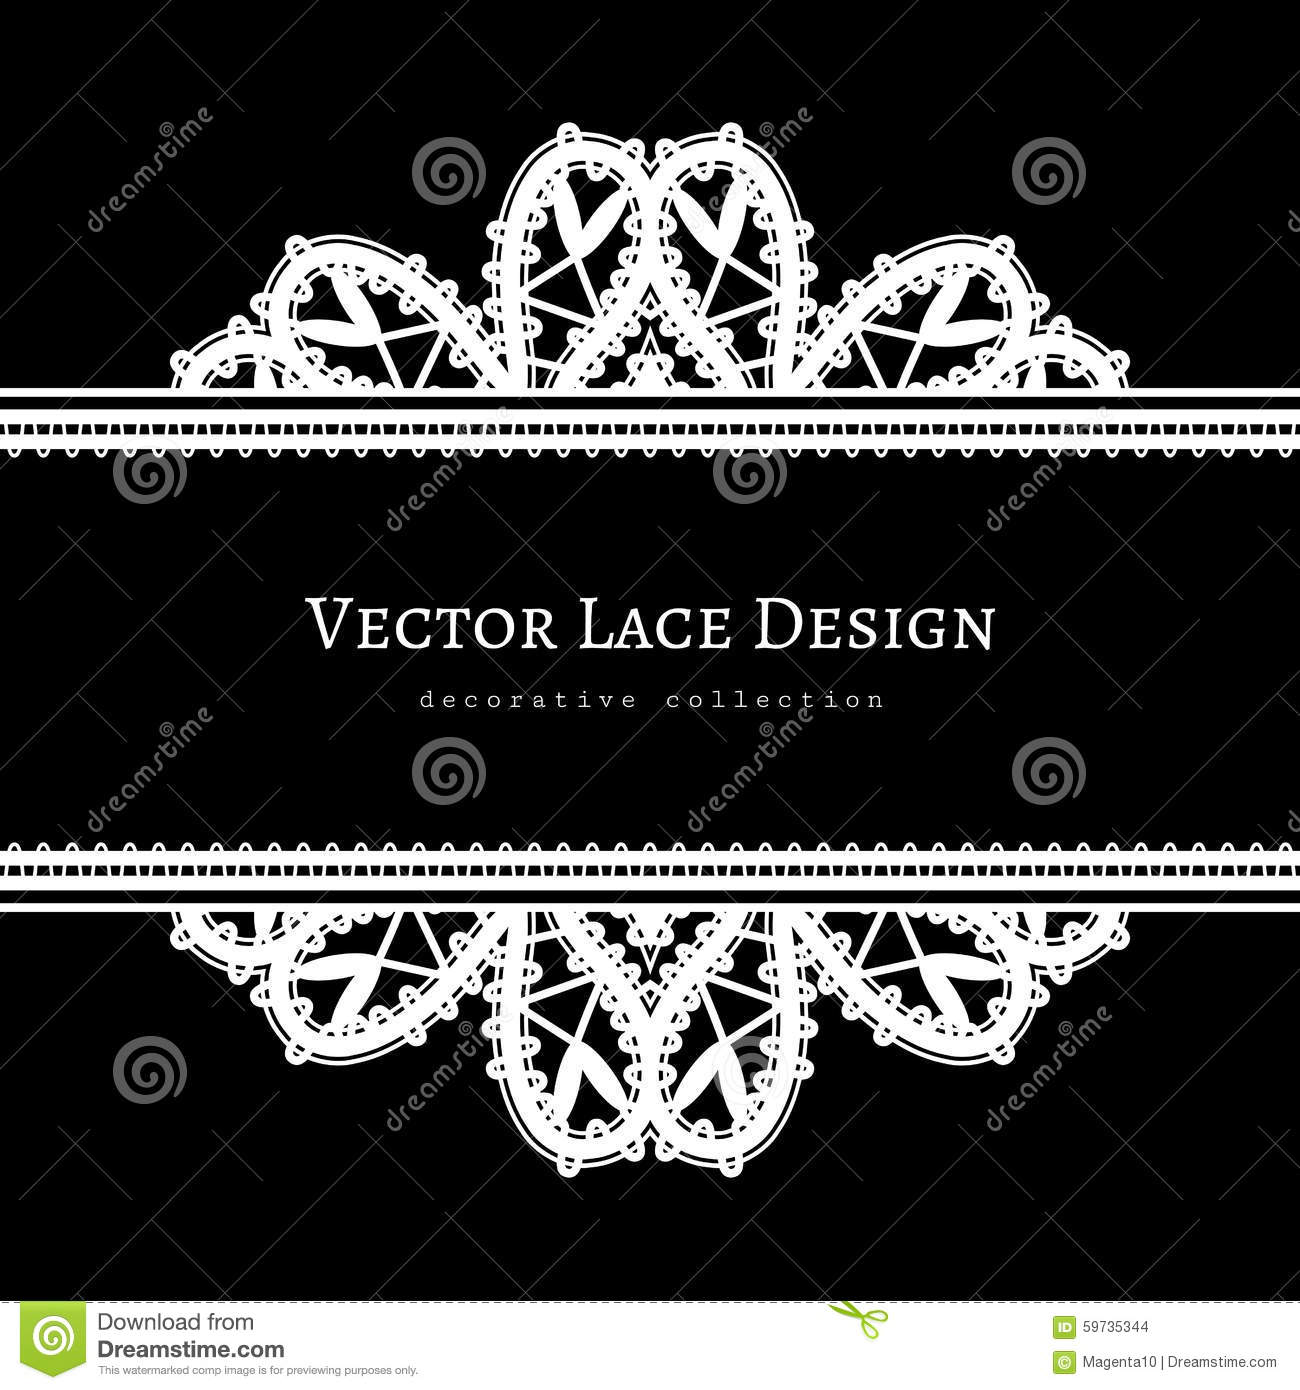 Black And White Frame With Tatting Lace Borders Illustration